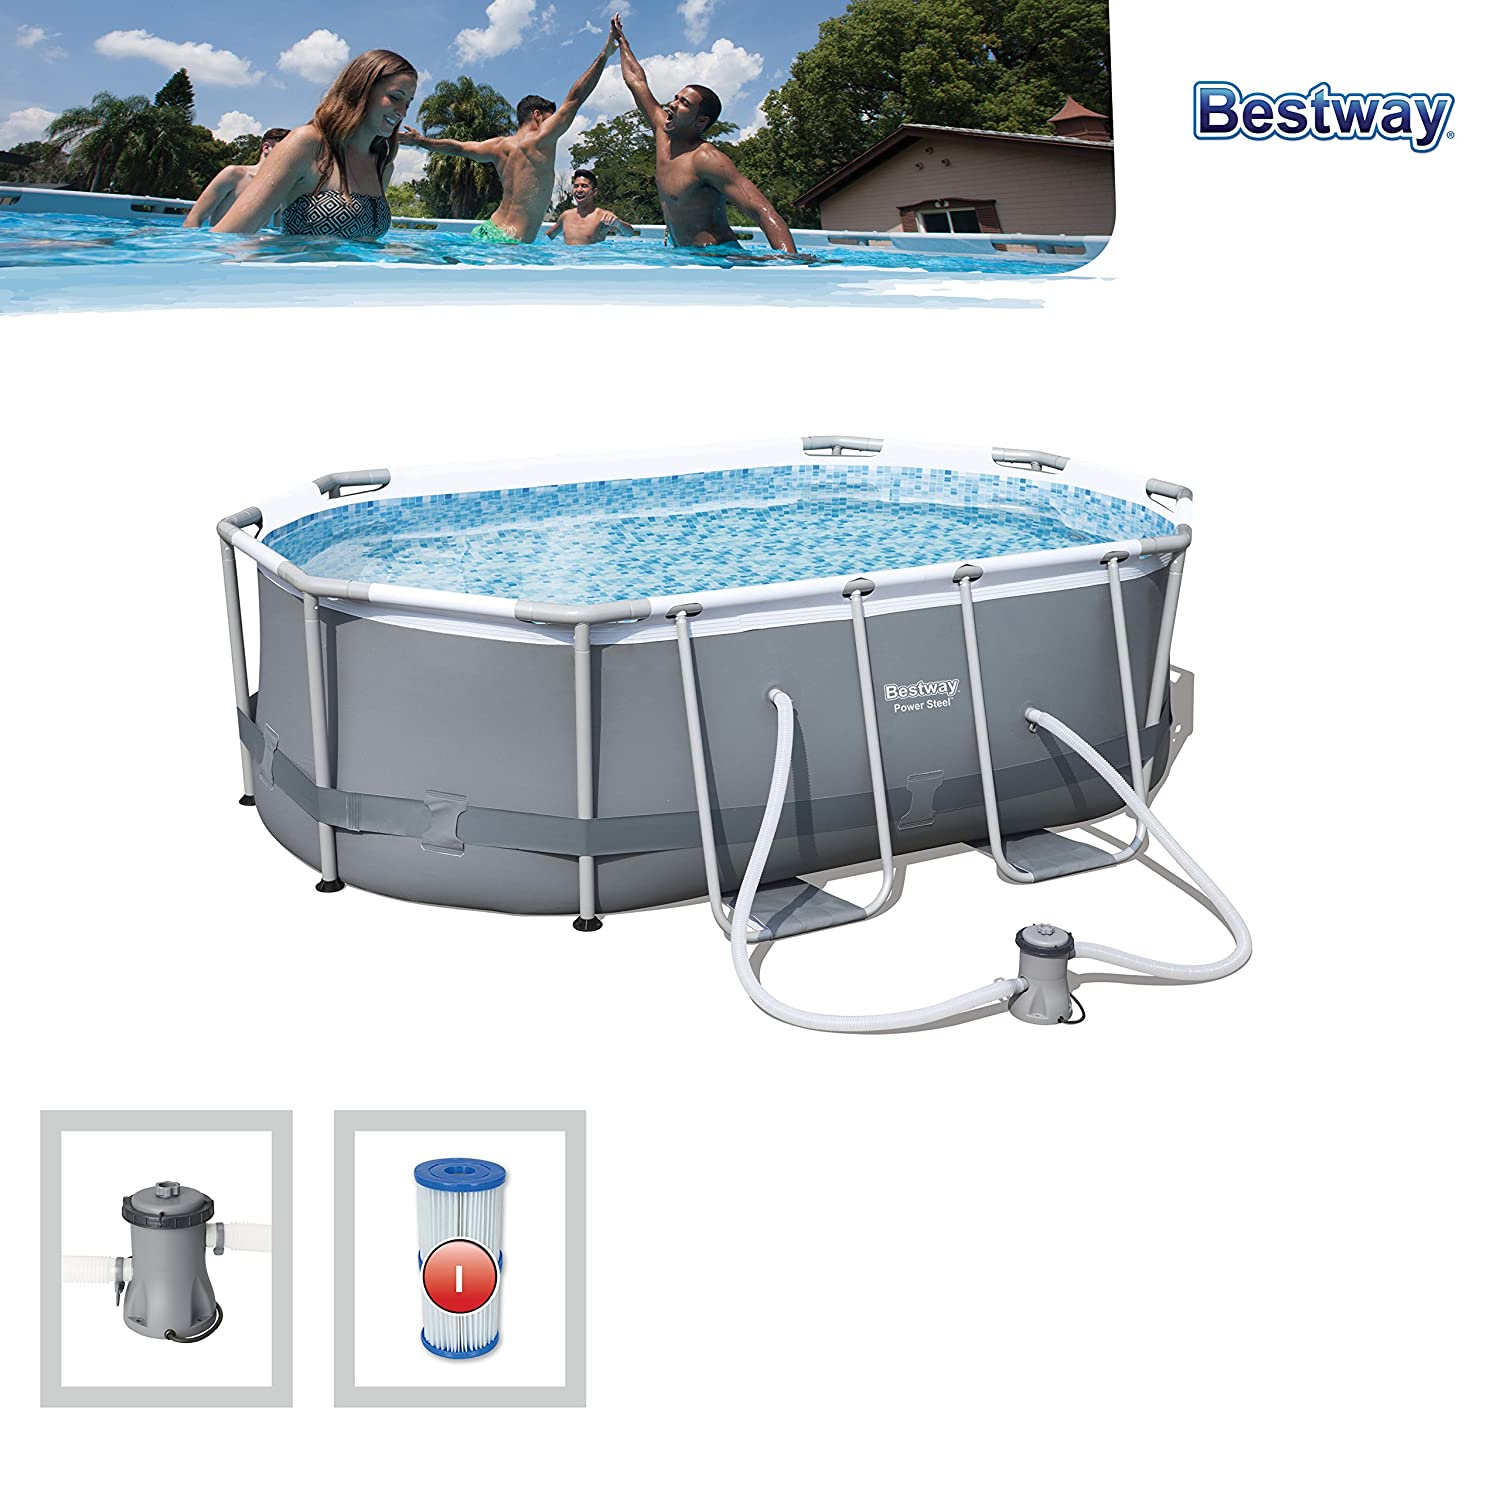 Bestway 56617 Piscina Power Steel Oval, 3.668 litros, M: Amazon.es: Jardín